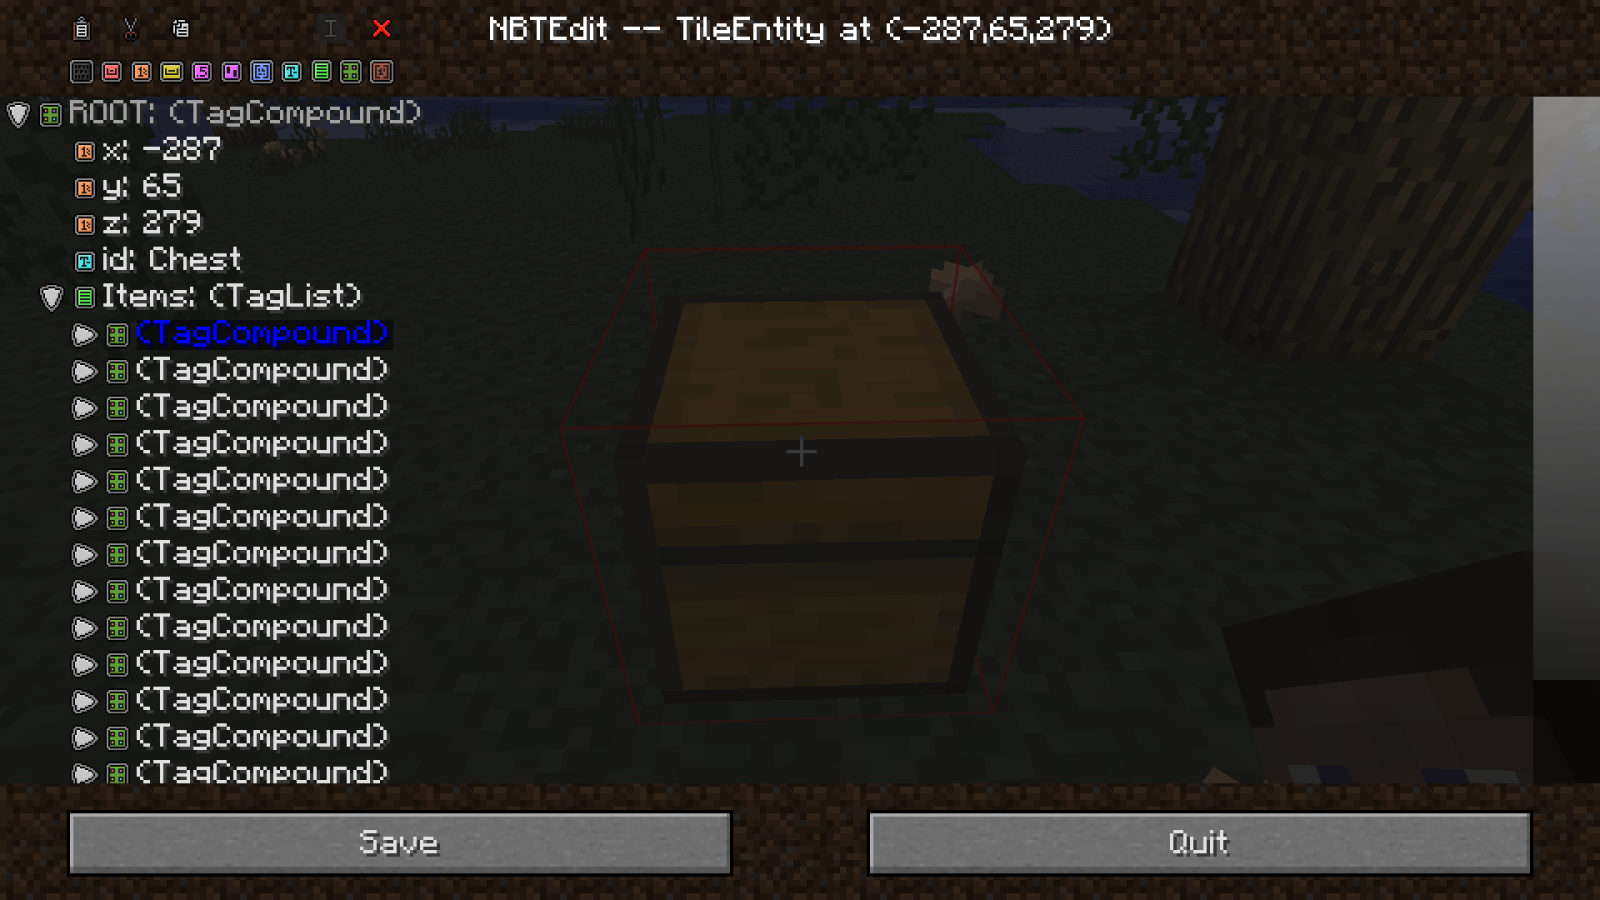 fb0c8  In Game NBTEdit Mod 1 [1.5.2] In Game NBTEdit Mod Download